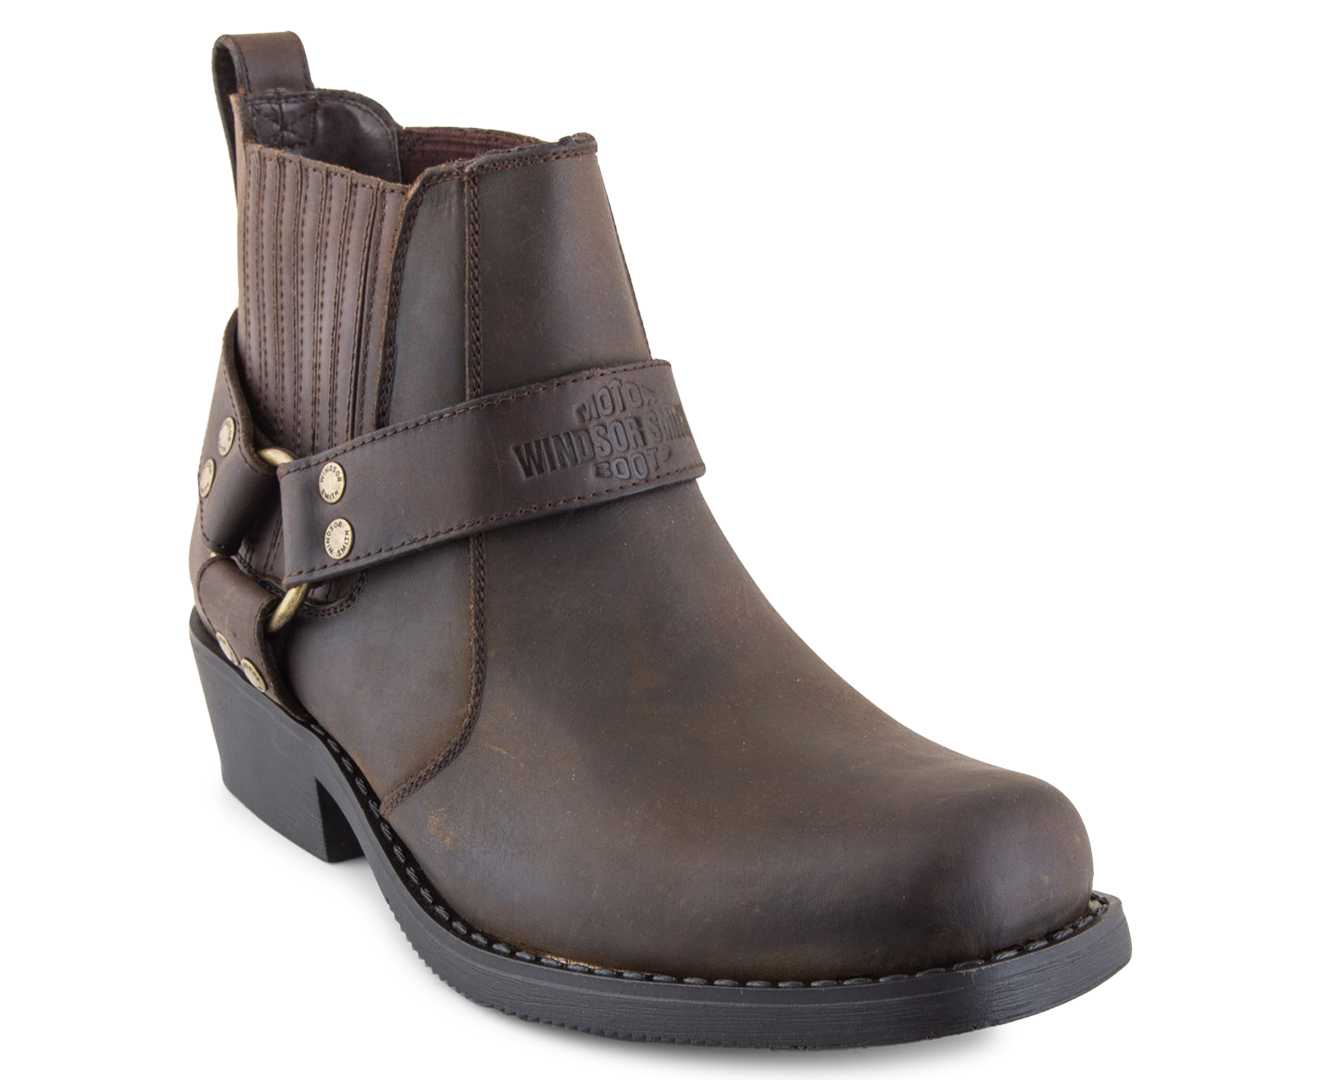 9961dddebe5 Windsor Smith Men's Low Biker Boots - Brown Leather | Catch.com.au